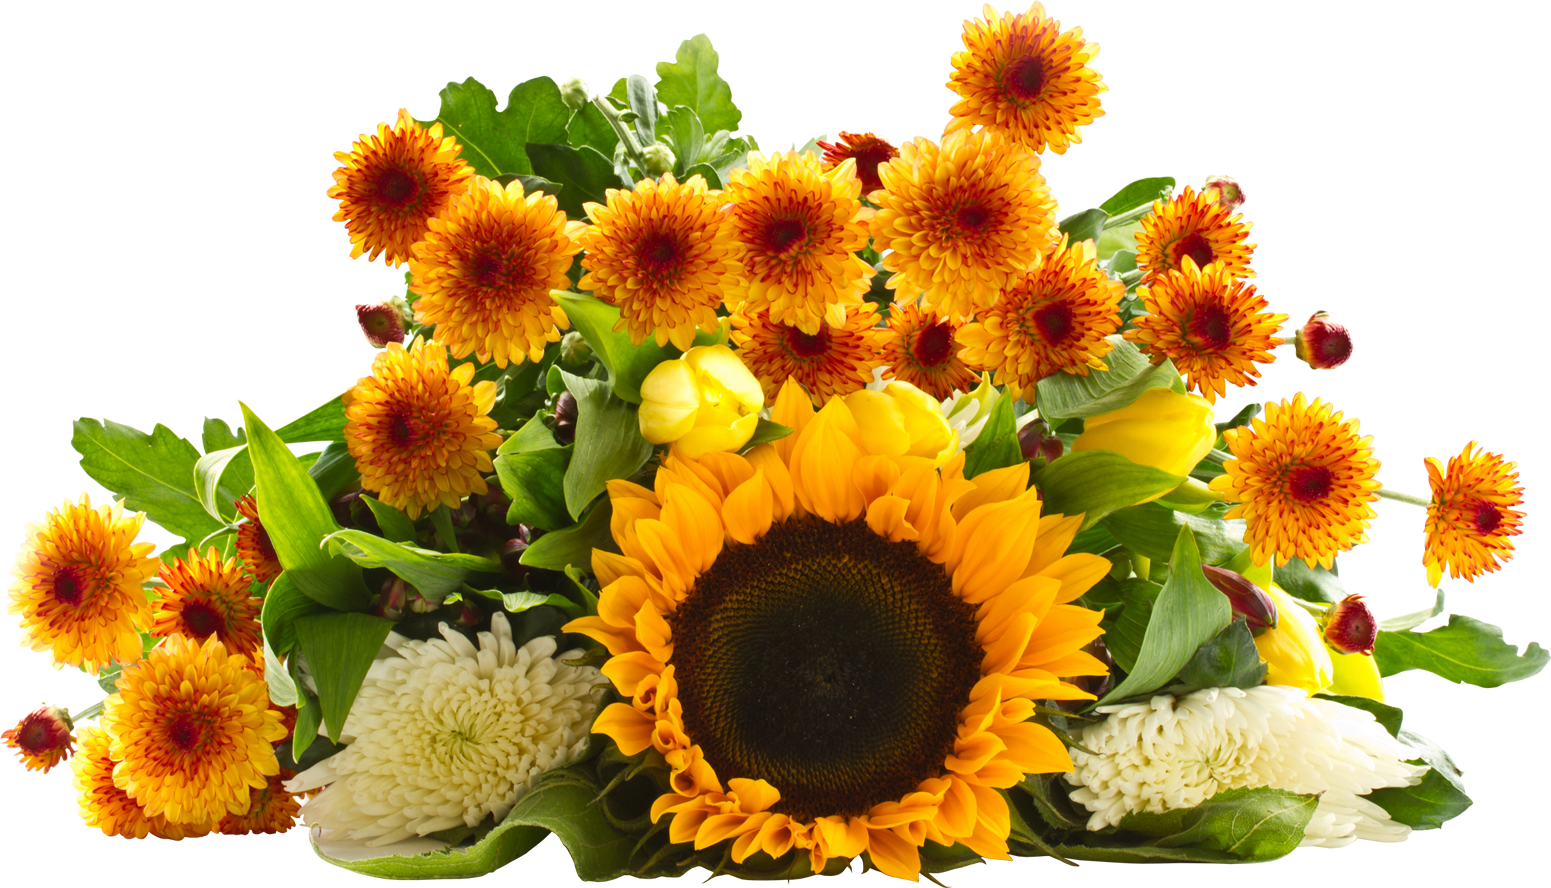 sunflower png images transparent background sunflower clip art borders sunflower clip art pictures